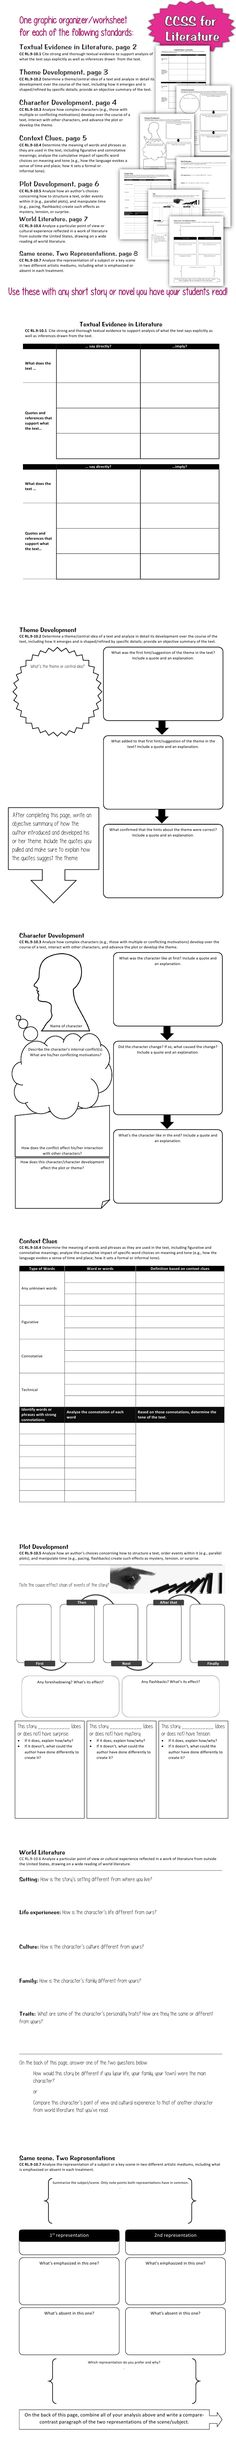 7 Graphic Organizers to use with ANY short story/novel for high school (one page for each of the following Common Core State Standards: Literature 9-10.1, 9-10.2, 9-10.3, 9-10.4, 9-10.5, 9-10.6, 9-10.7)